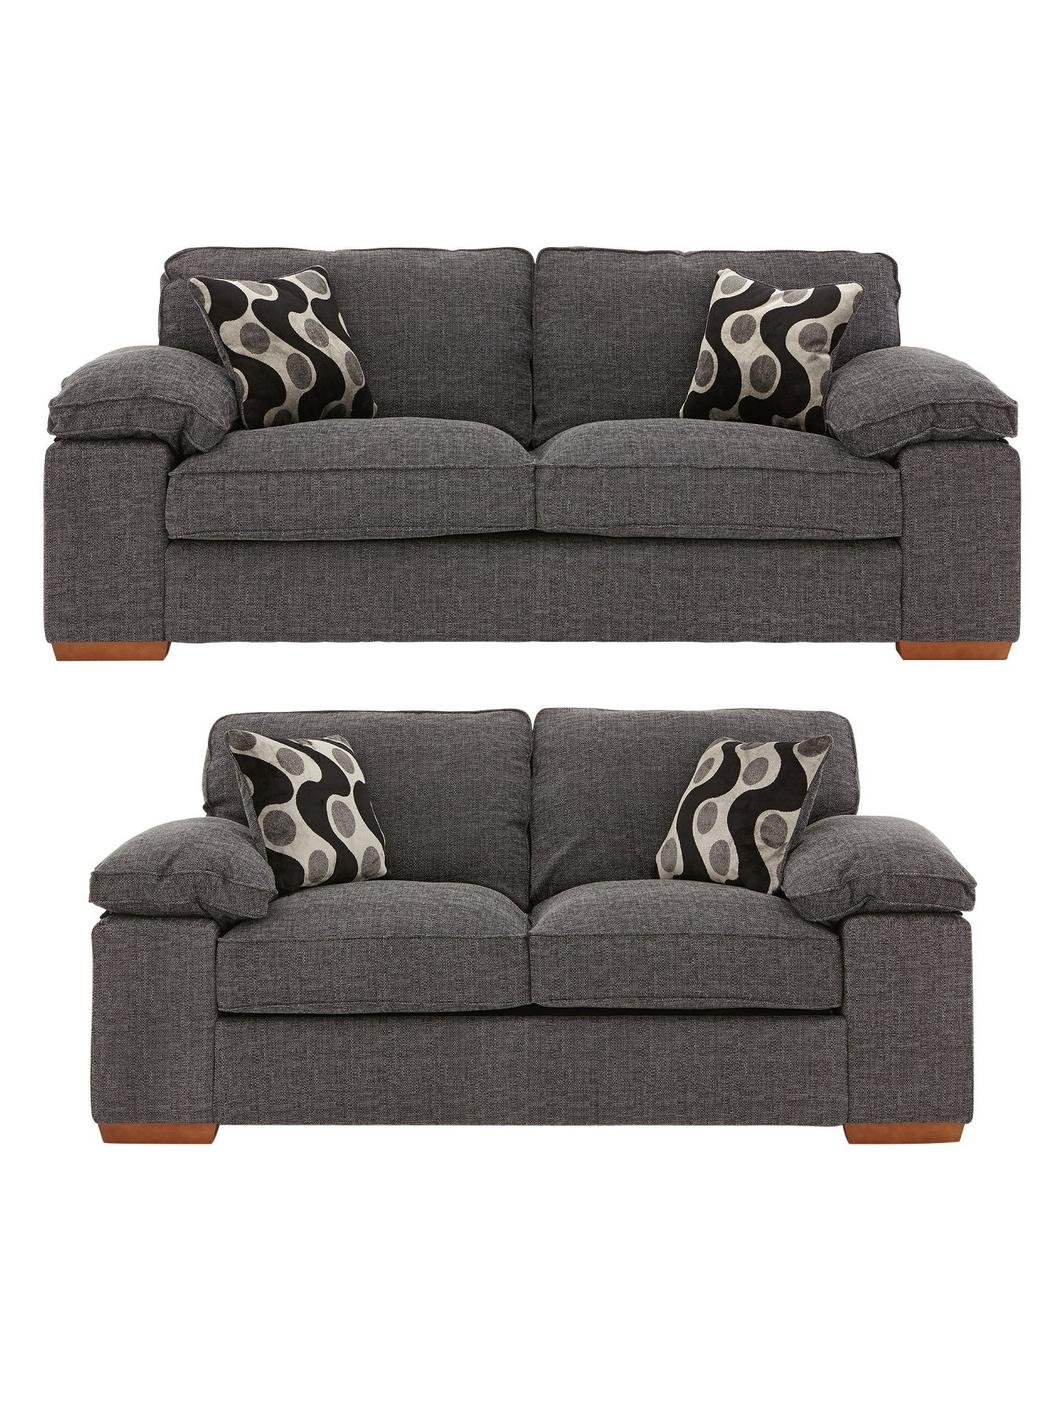 Sofas, Sectionals and Sofa Beds